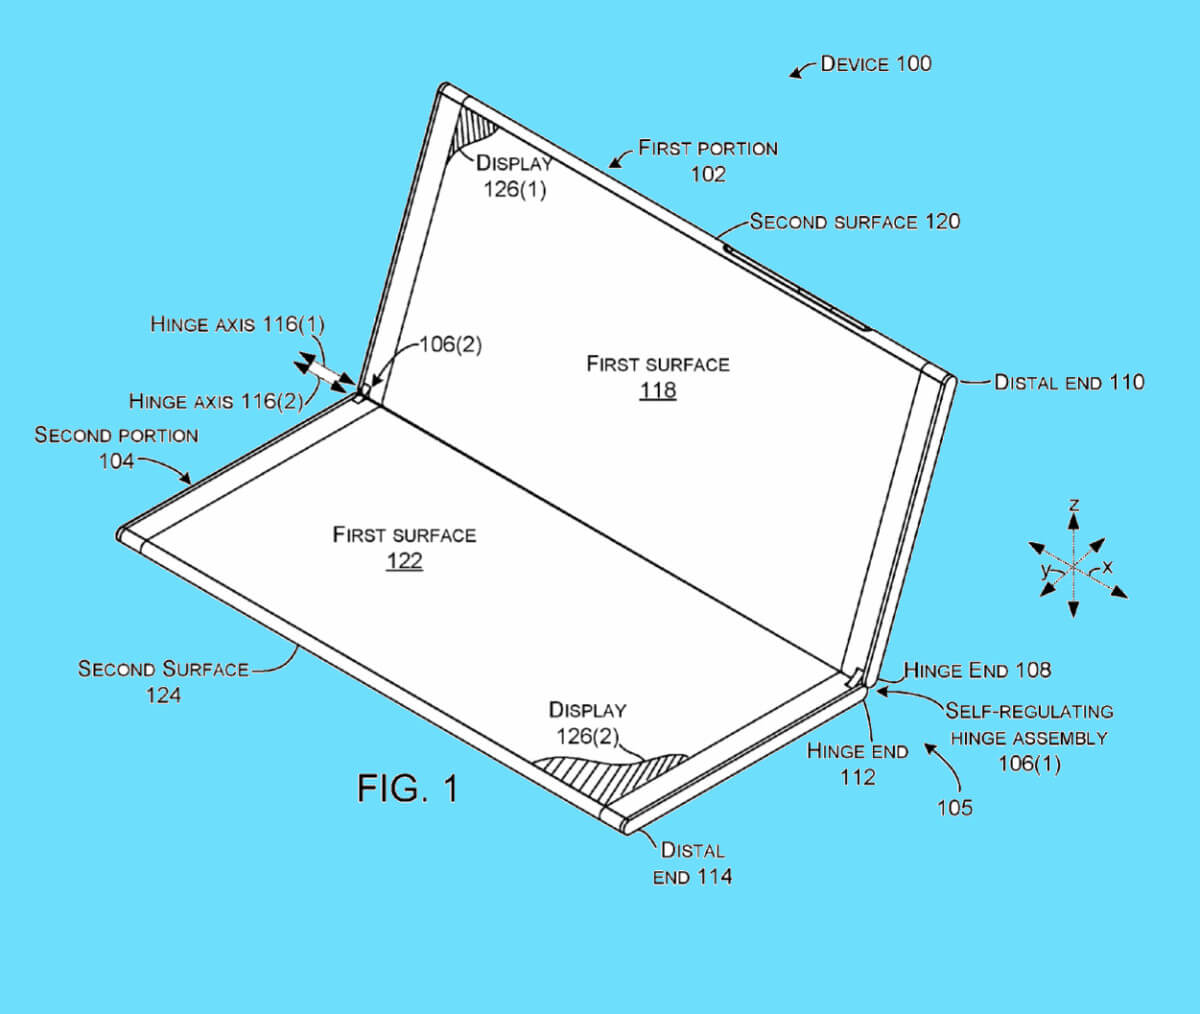 New patents reveal even more details about Microsoft's rumored Surface Phone